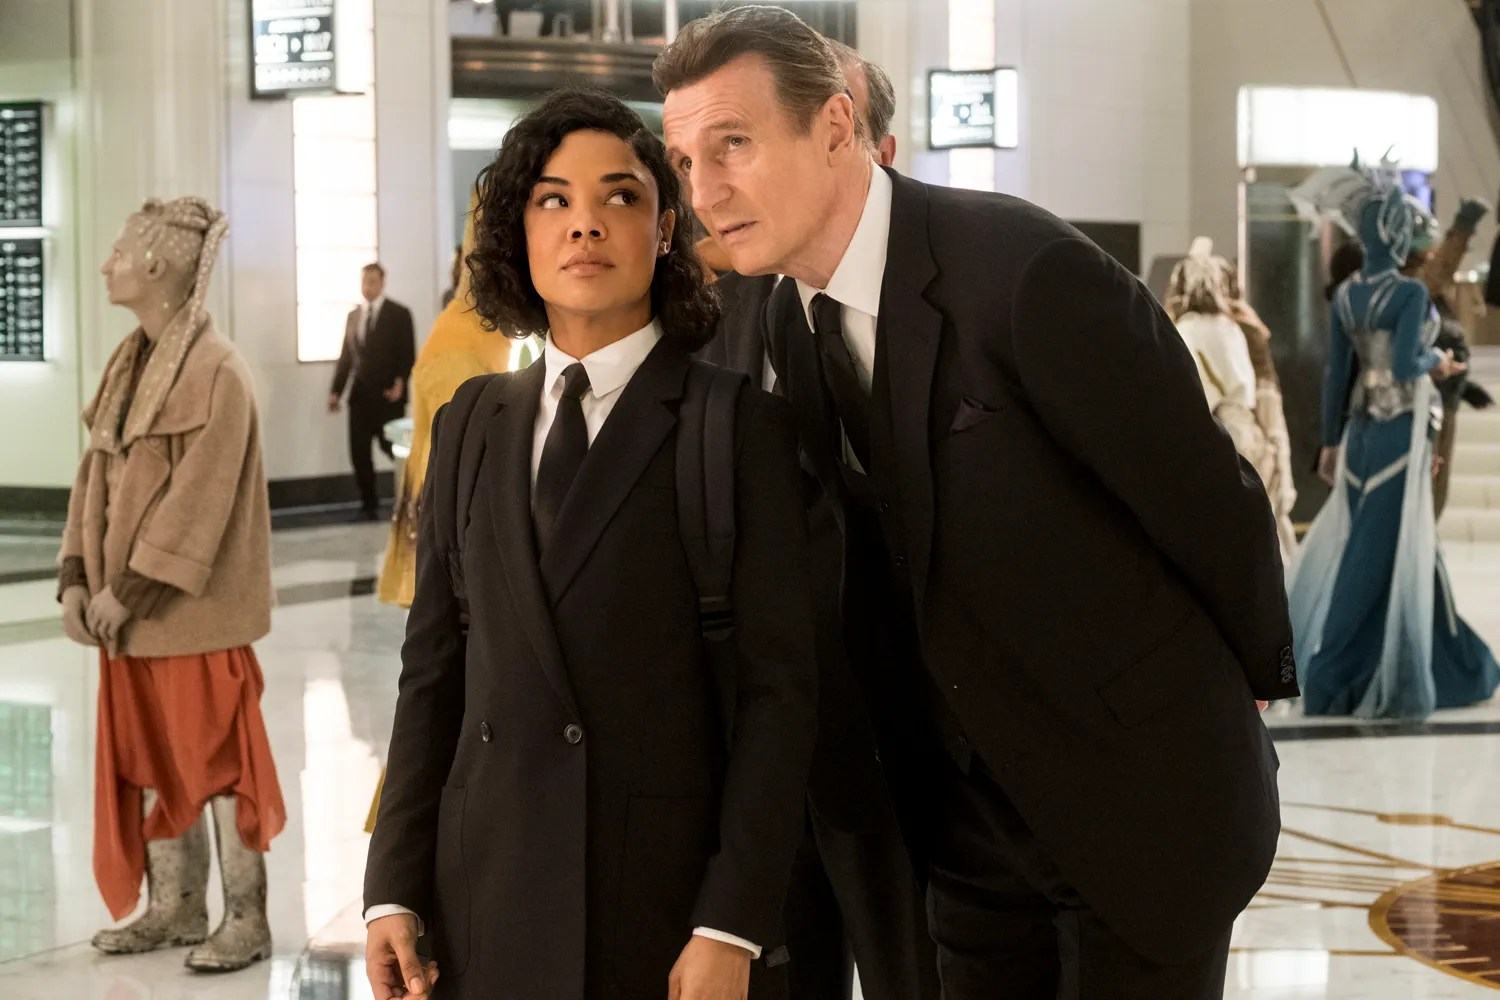 New Men In Black International Images Really Rock a Suit